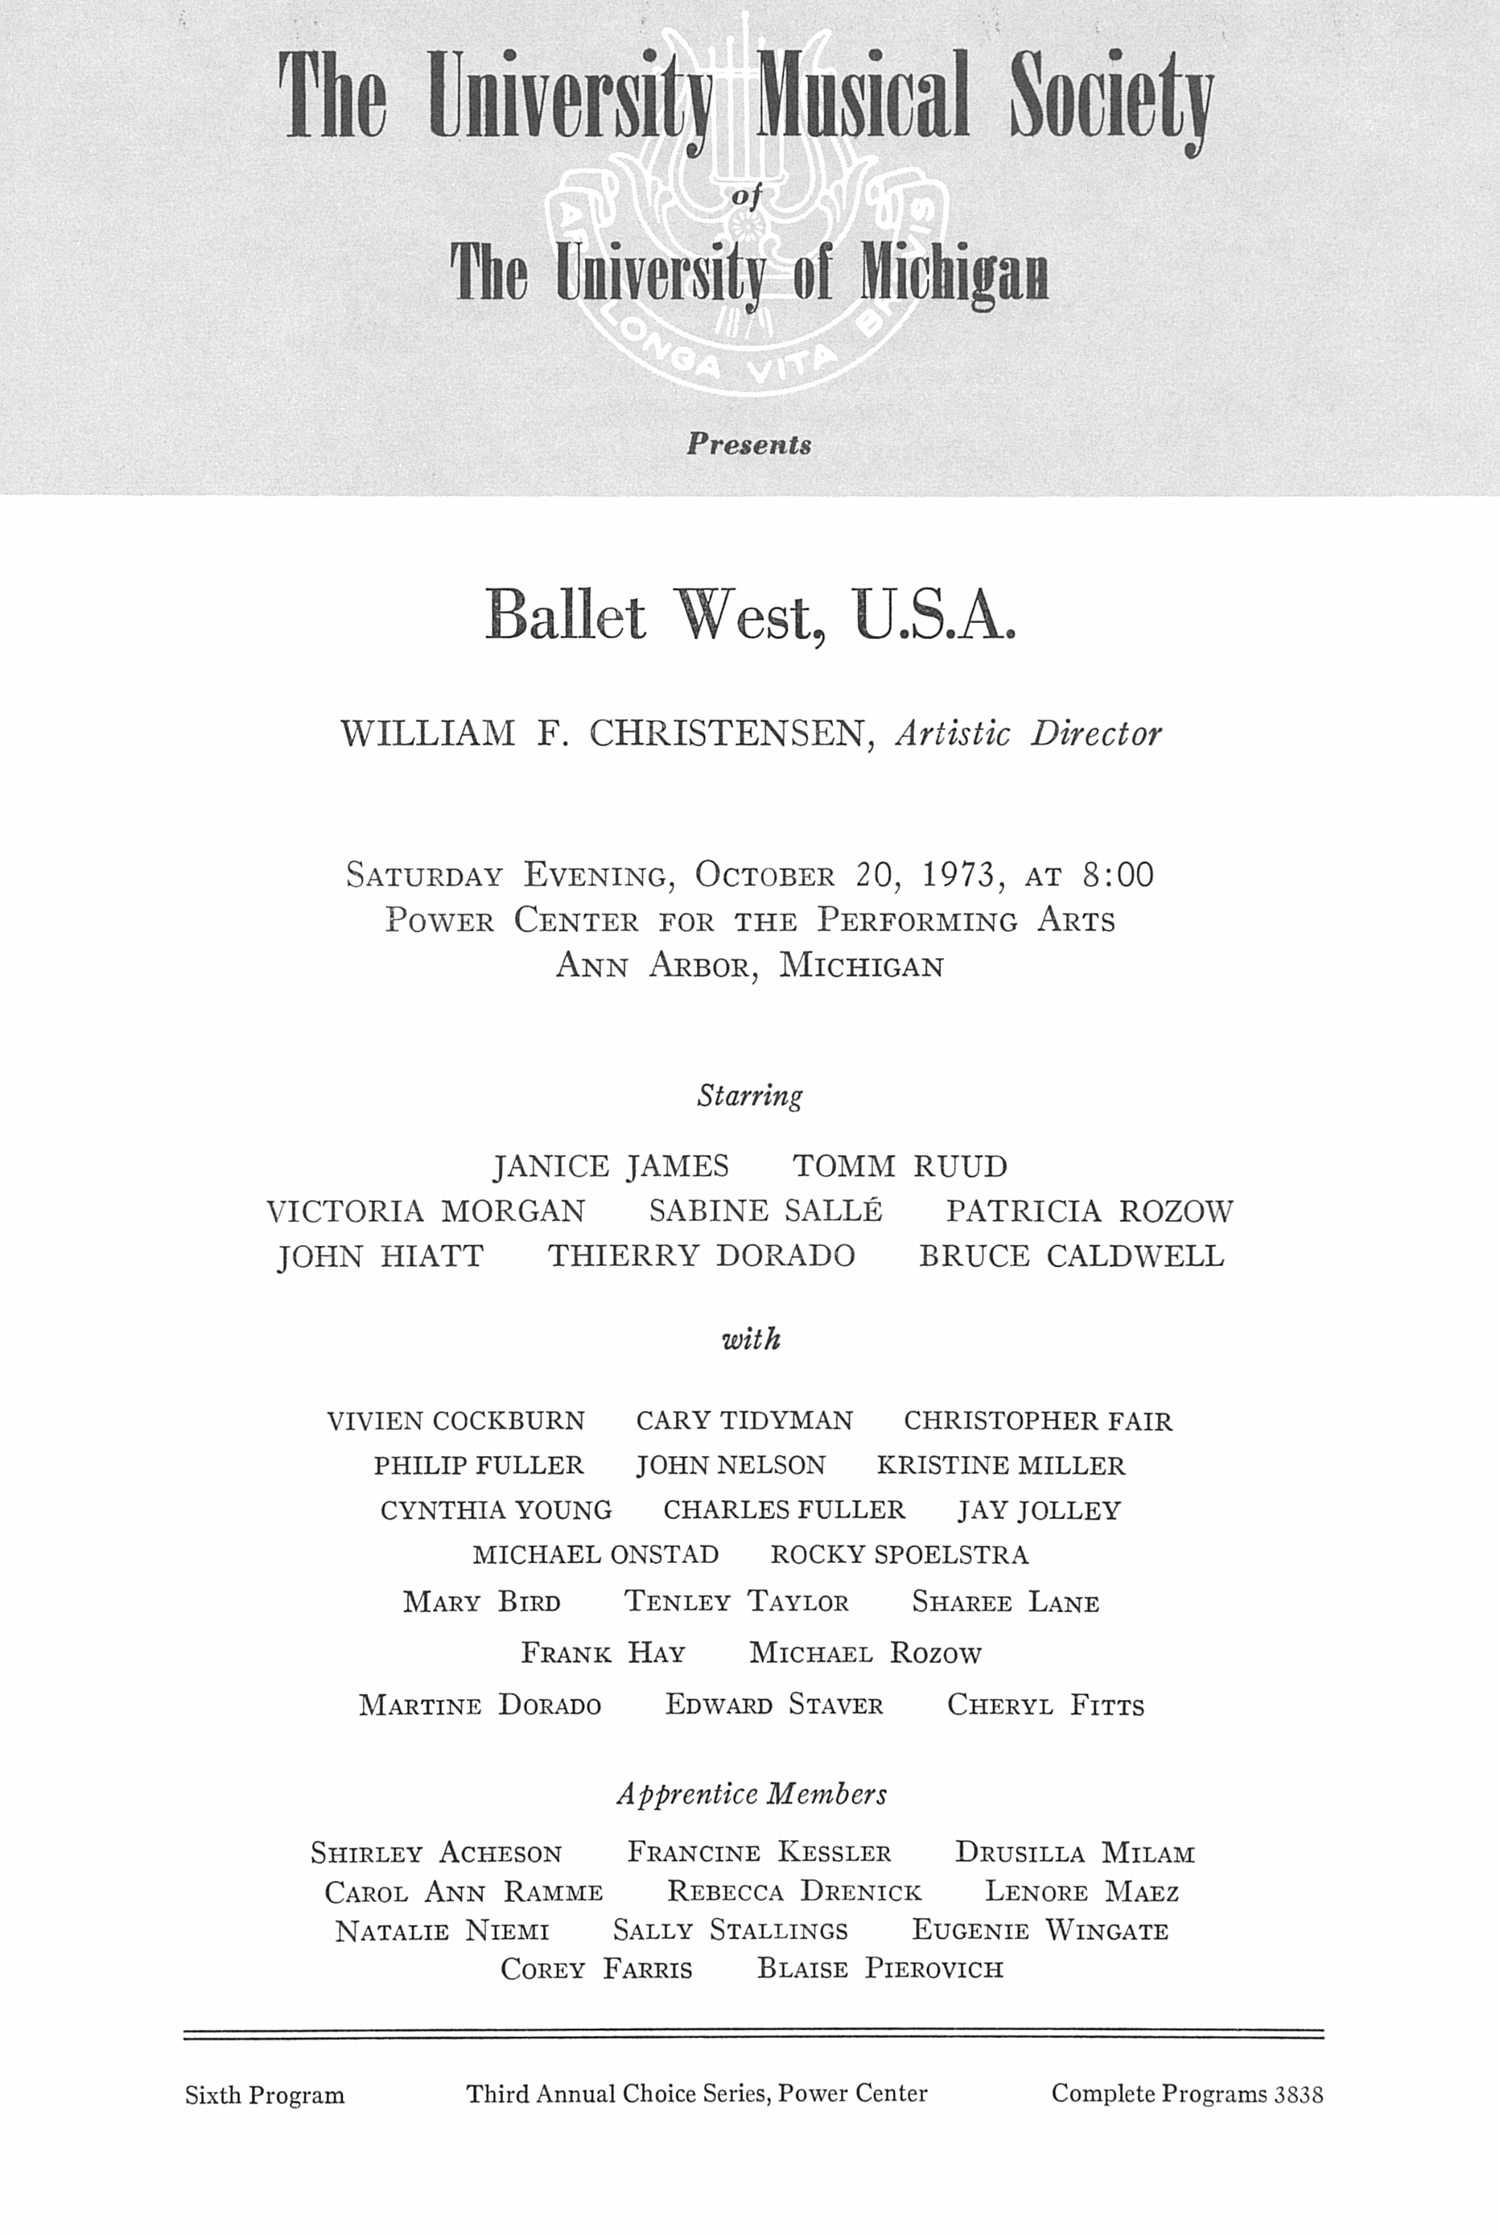 UMS Concert Program, October 20, 1973: Ballet West, U.s.a. -- William F. Christensen image